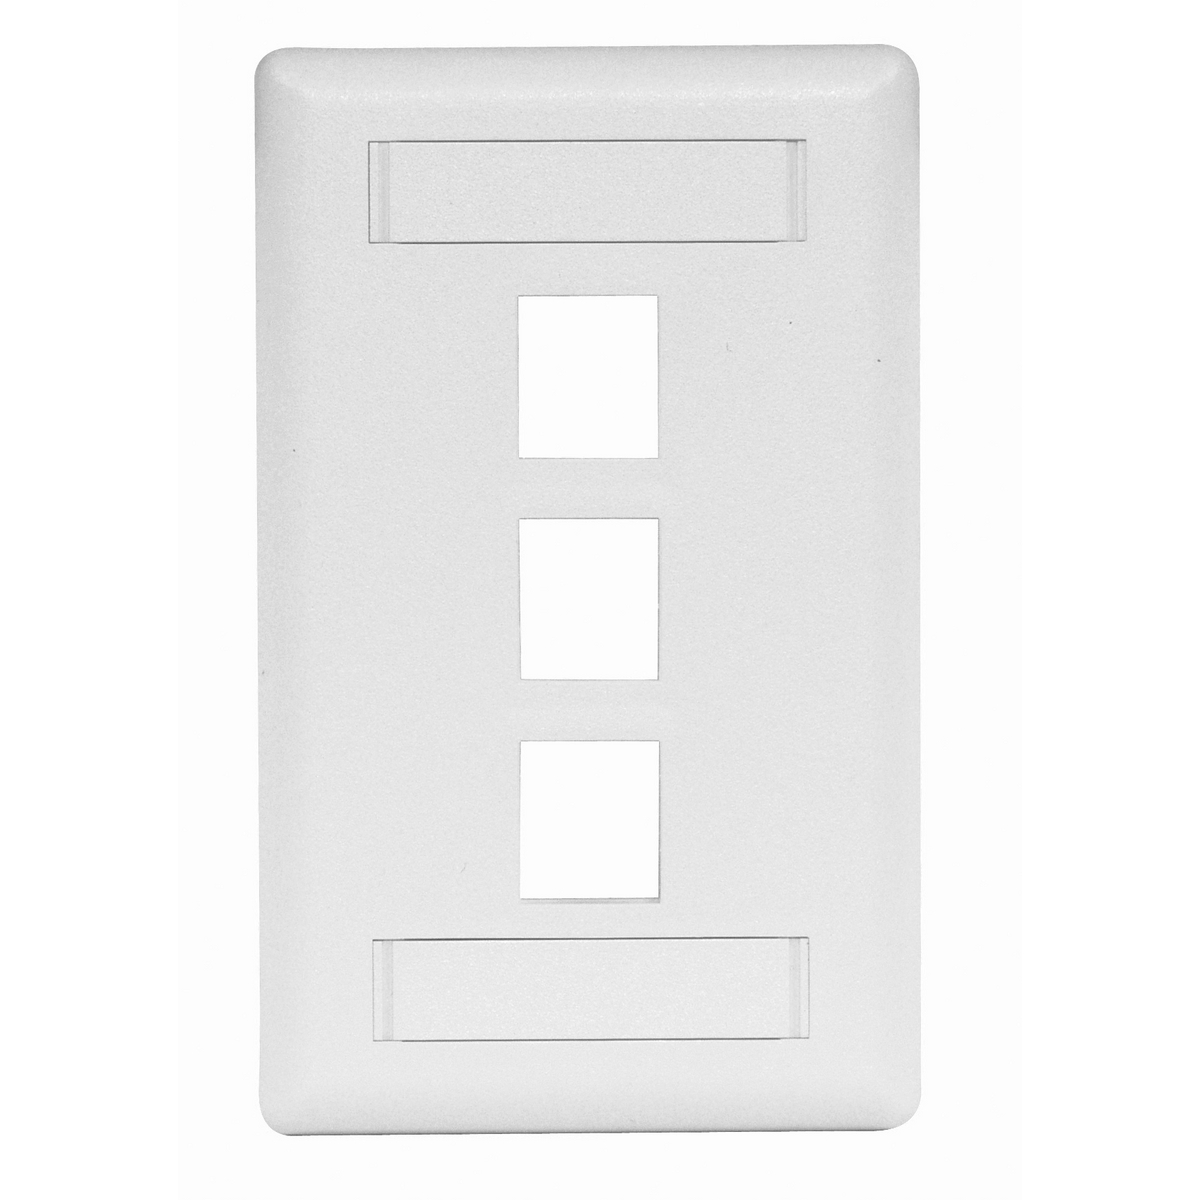 HUBPR IFP13W PLATE, WALL, FLUSH, 1-G, 3PORT, WH